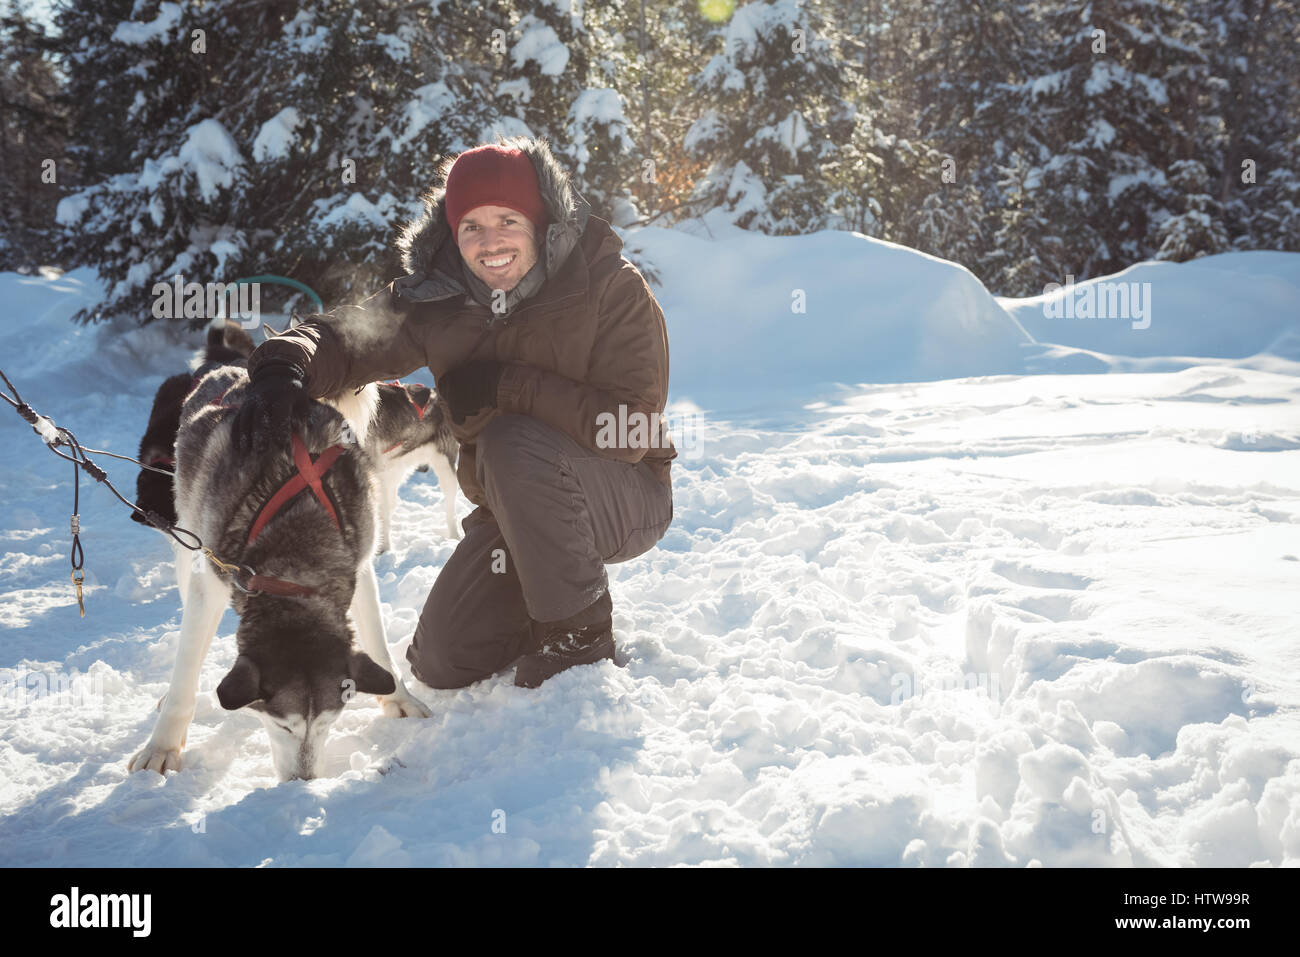 Smiling musher tying husky dogs to the sledge - Stock Image